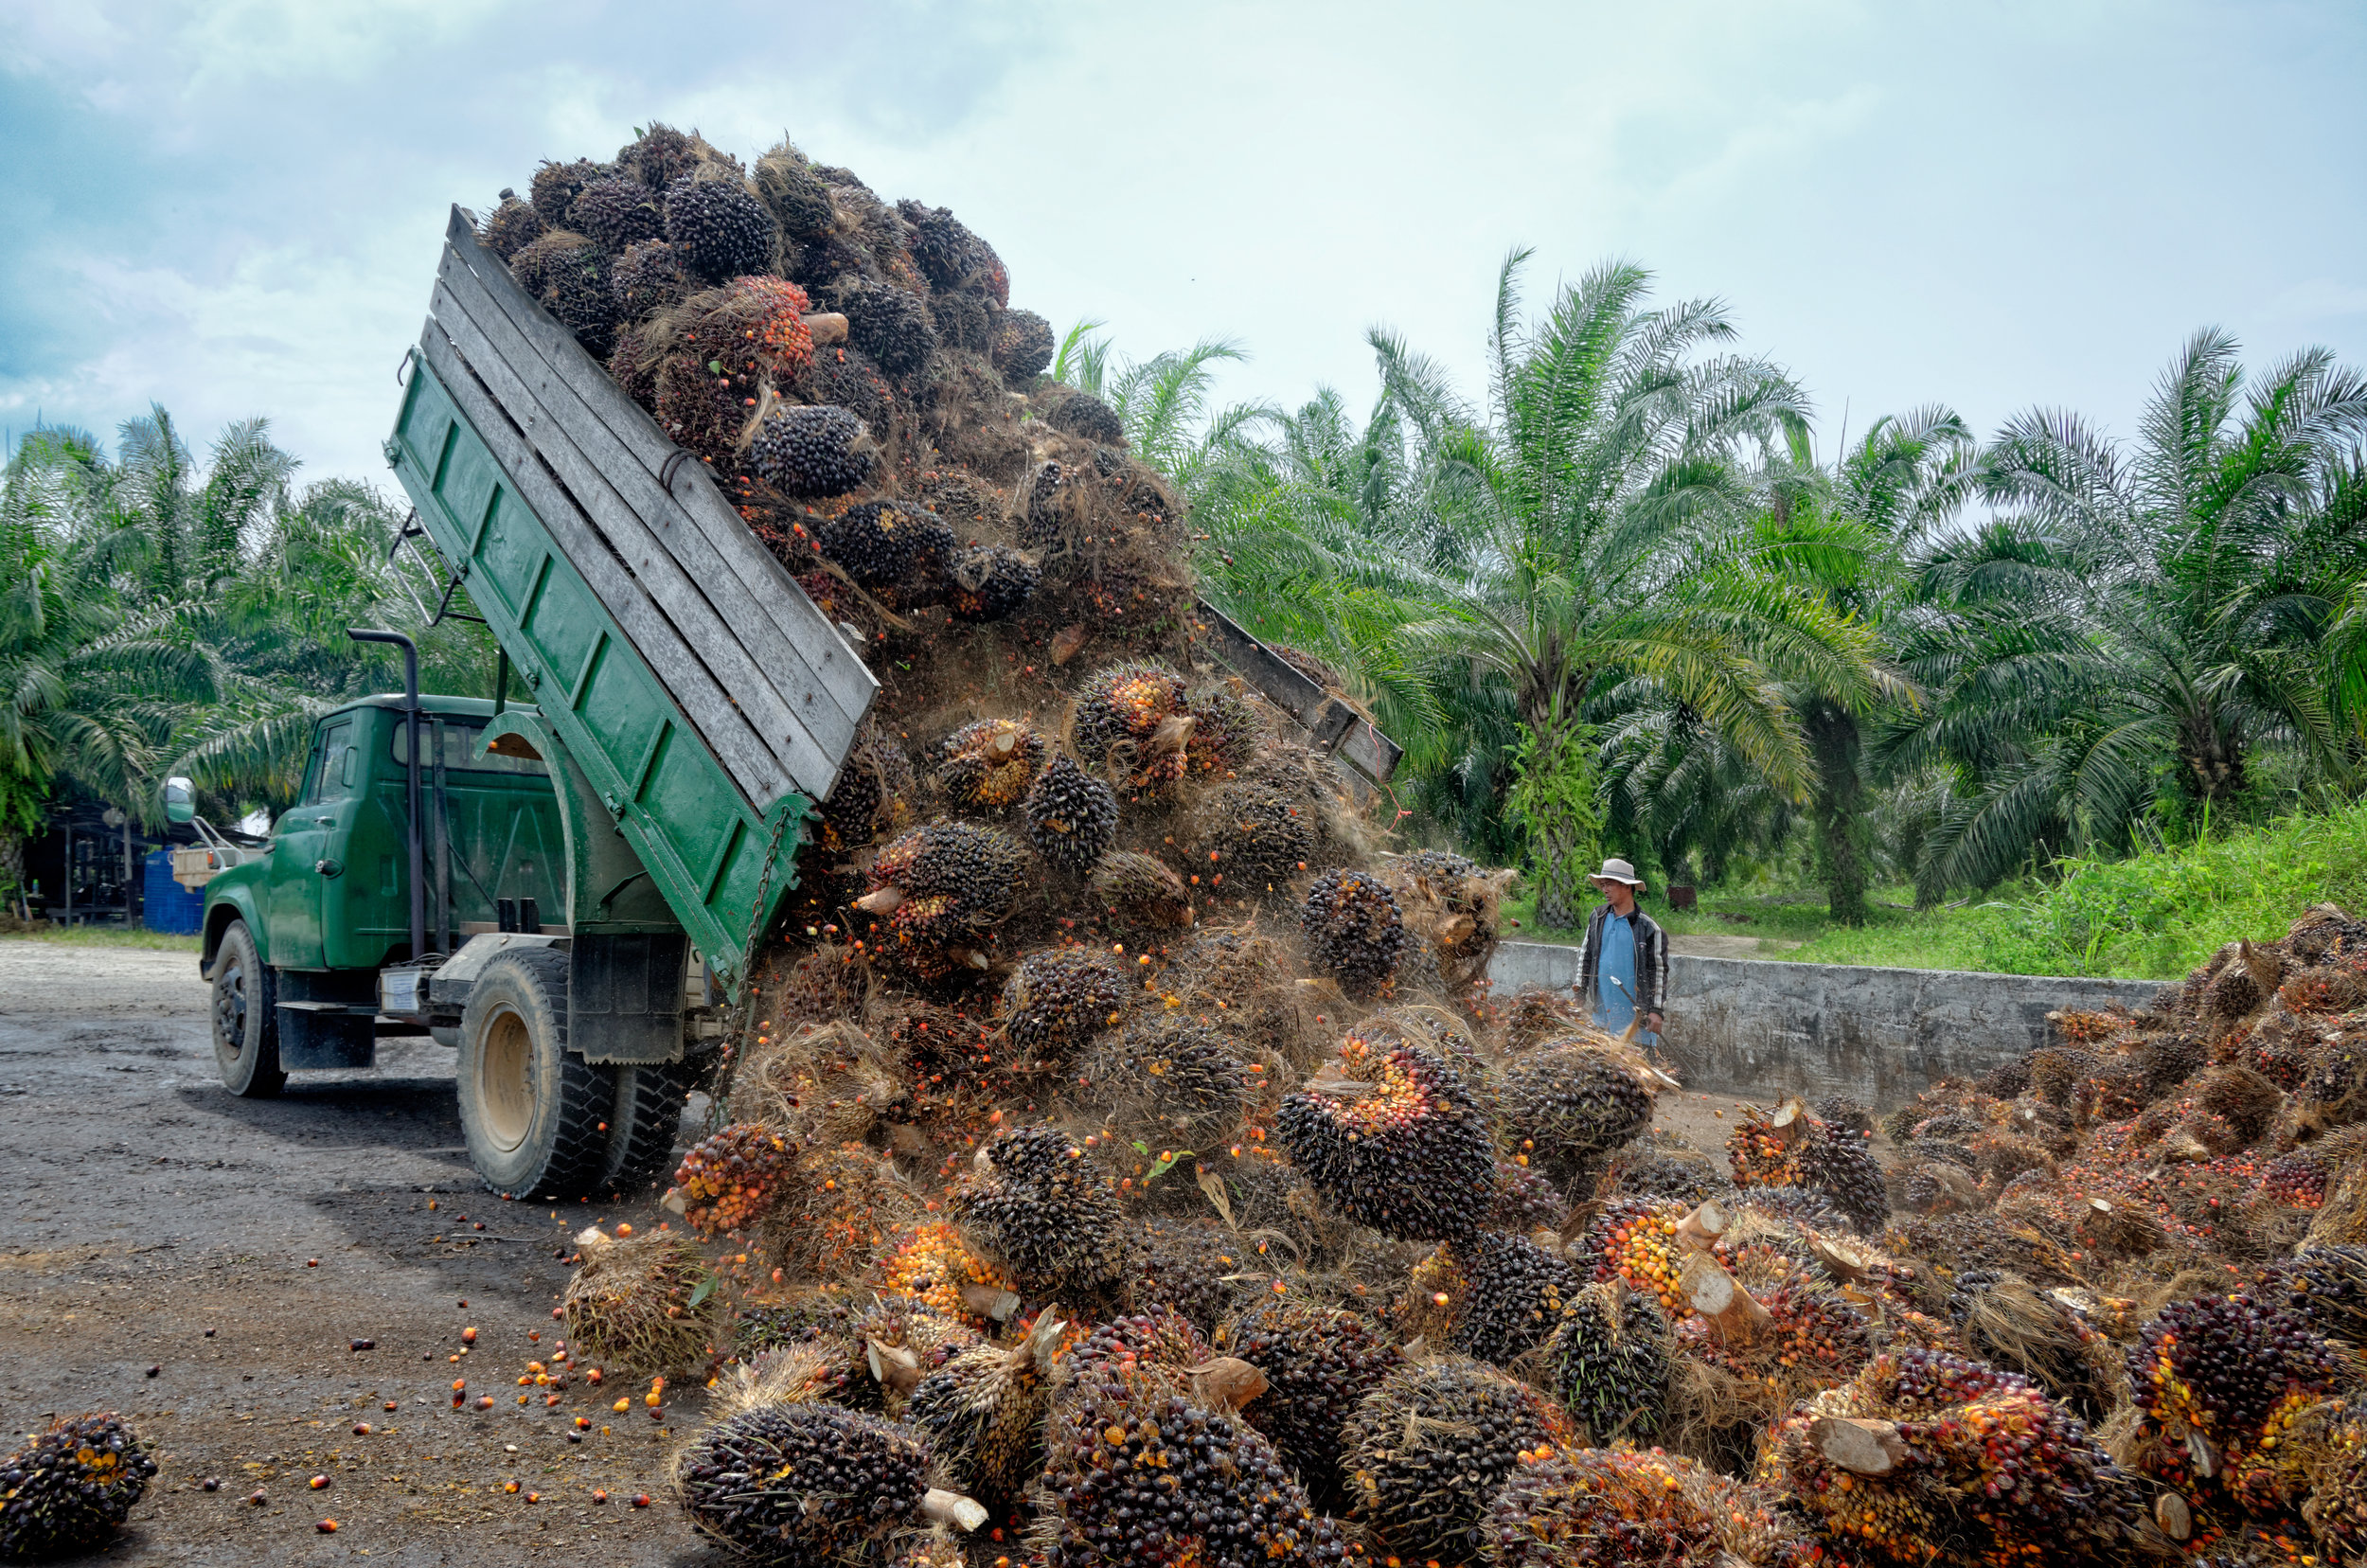 PICTURED:  Plantation worker watches as a truck unloads freshly harvested oil palm fruit bunches at a collection point.